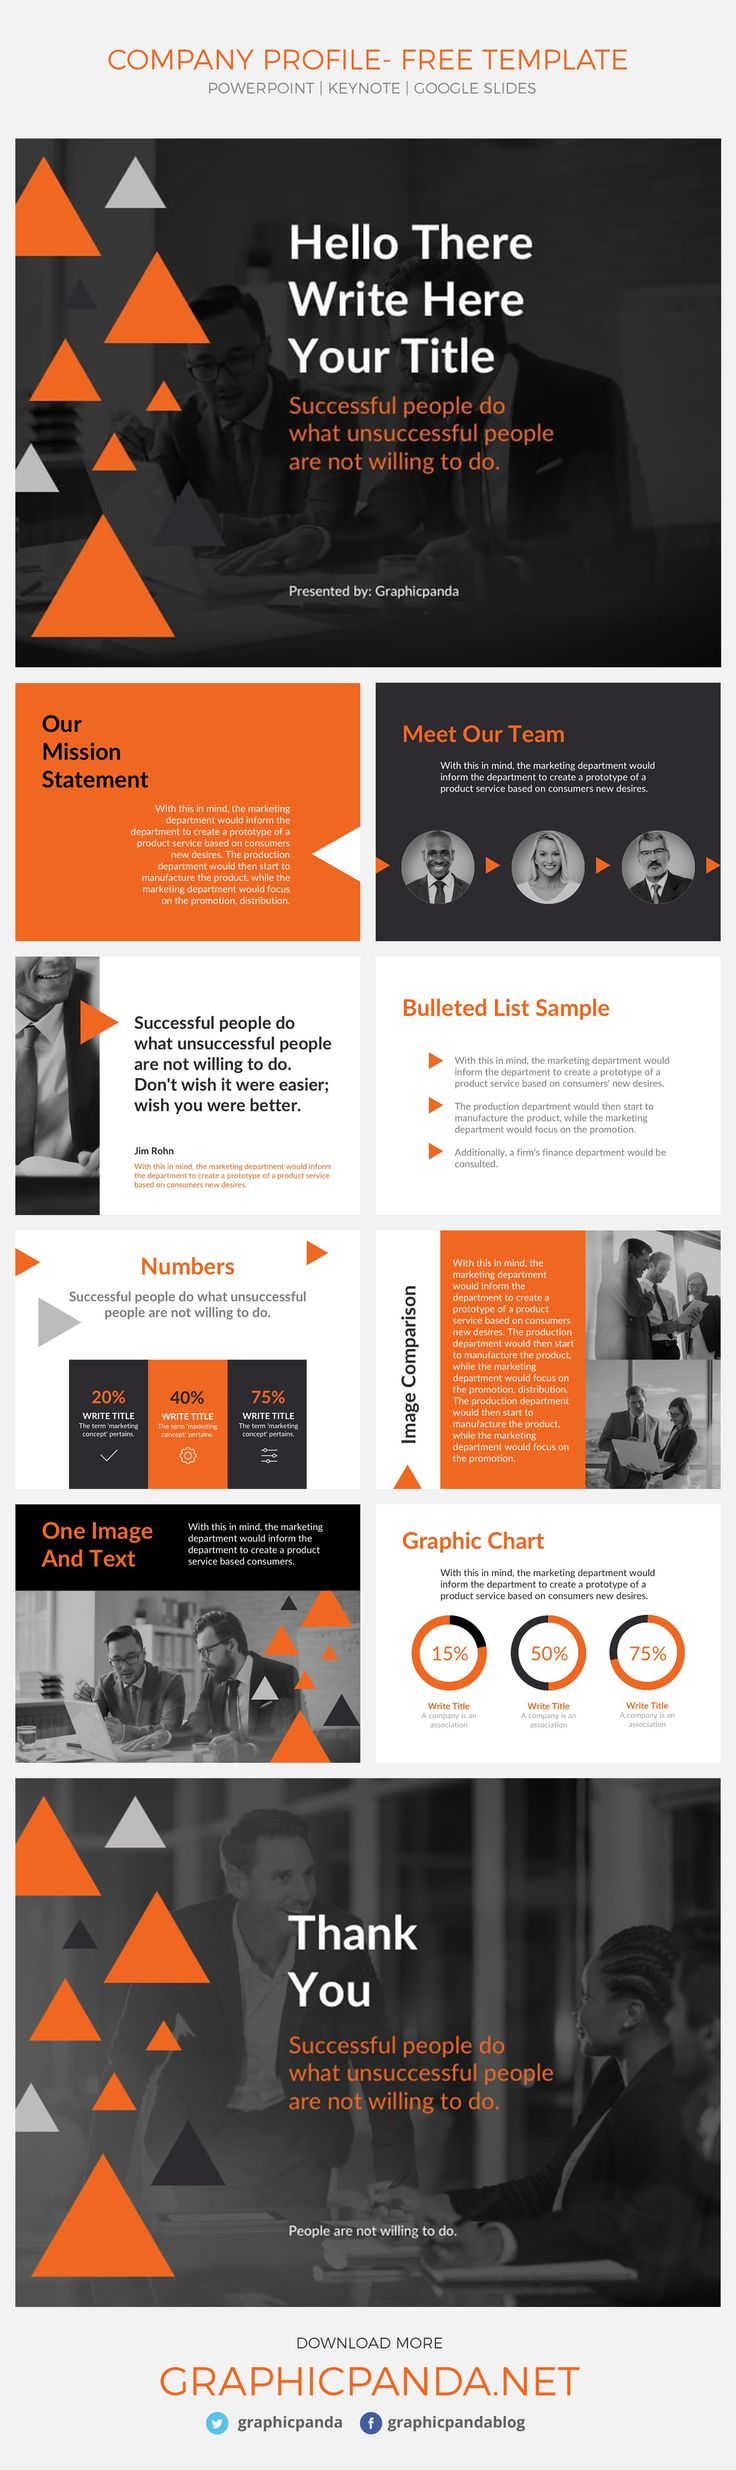 Create a professional presentation in no time with this free Company Profile Google Slides Theme. This simple to use and free presentation template comes also in two extra formats, Microsoft PowerPoint and Apple Keynote. No matter the size of the company you are representing with this free presentation template Company Profile Google Slides Theme and PowerPoint and Keynote, you will be able to introduce your small business or fortune 500 with confidence and professionalism.